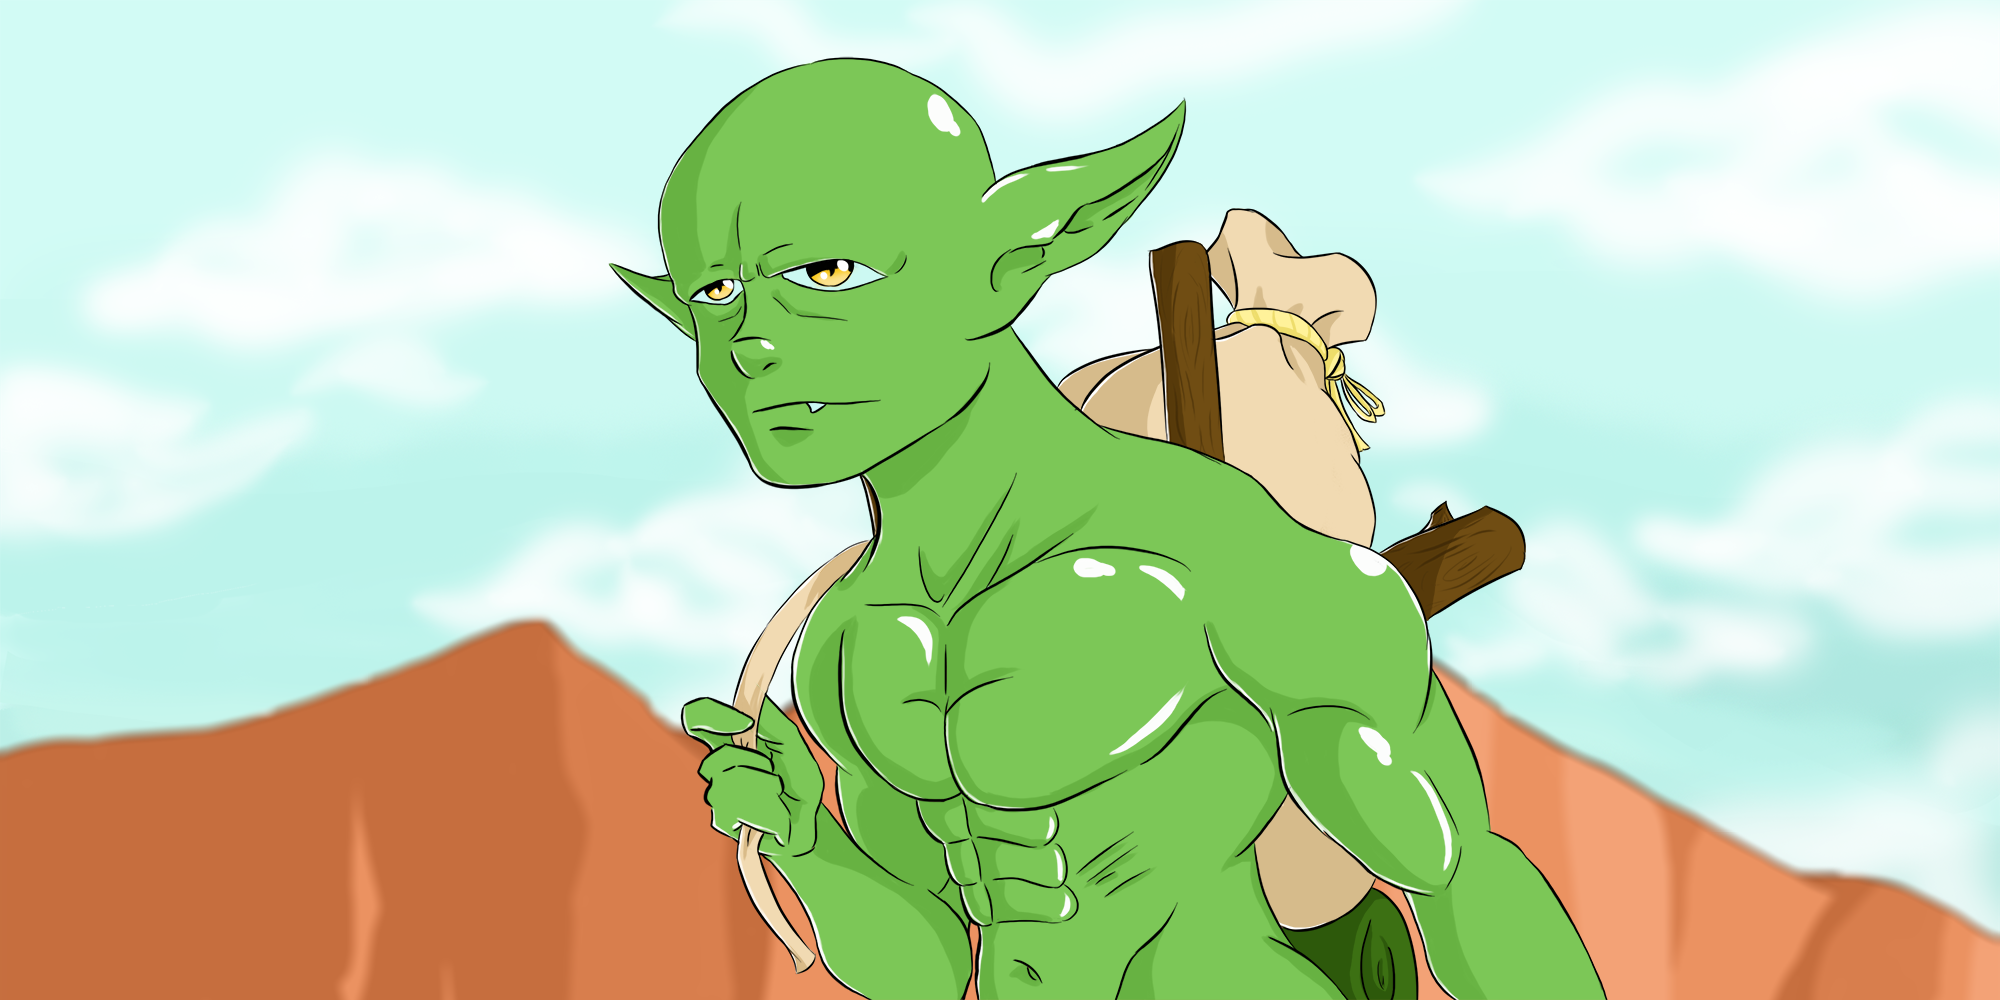 Unemployed Orc